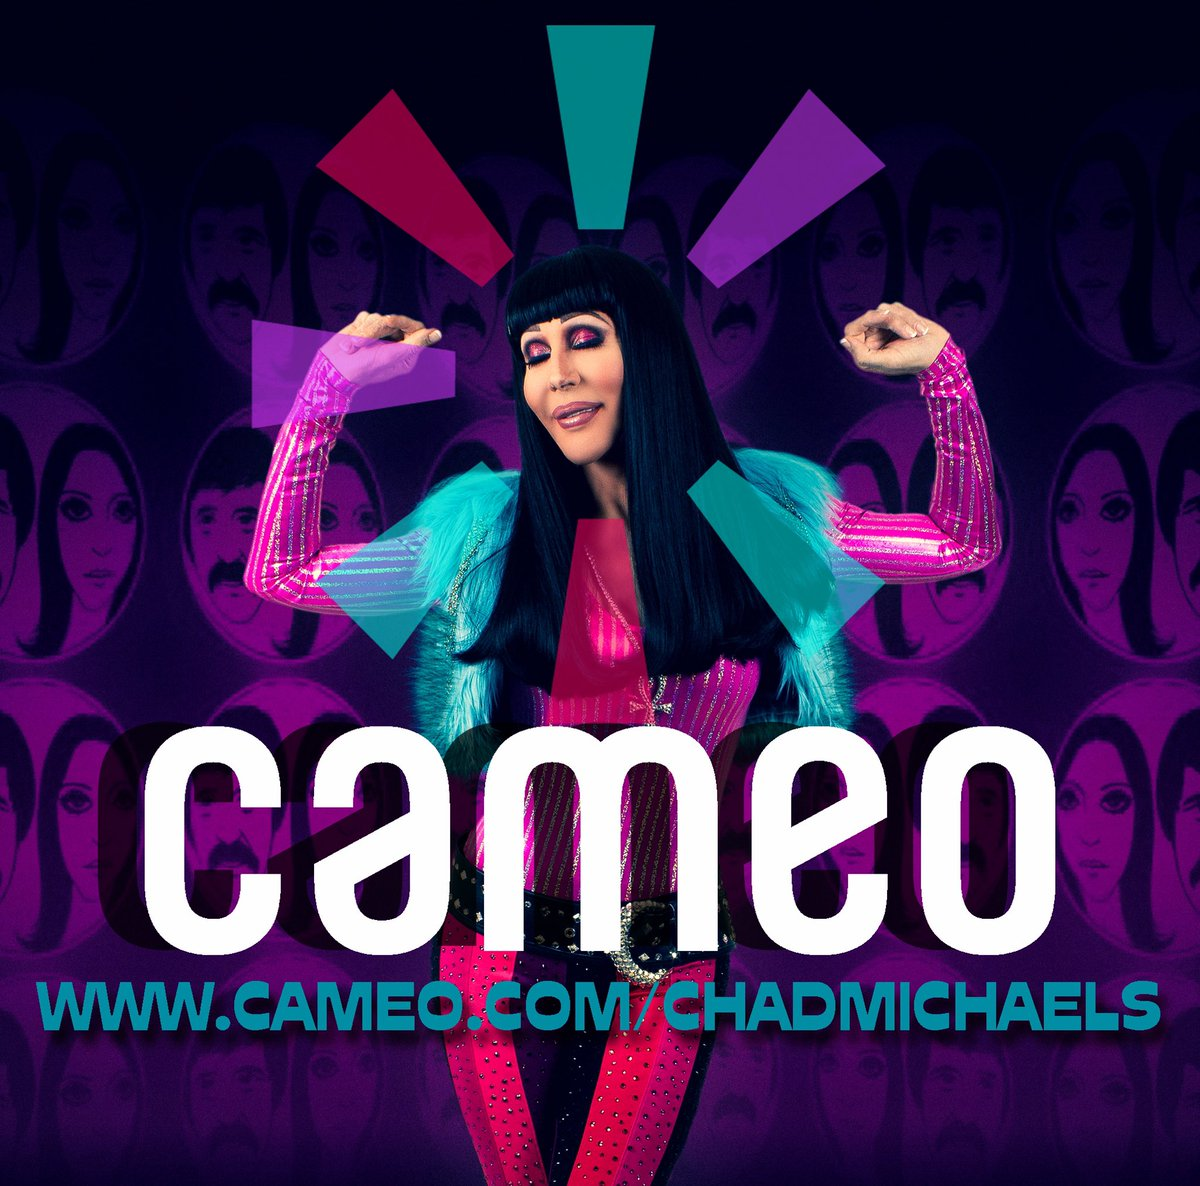 Please consider booking me on @BookCameo for personalized messages for all occasions!! For a goodtime call....😉😈 #cameo #cameofameo #videomessage #virtualdrag #imcherbitch #RuPaulsDragRace #RuPaulsDragRaceAllStars #allstar #dragqueen #PrideMonth2020 #pride #live #love #respect